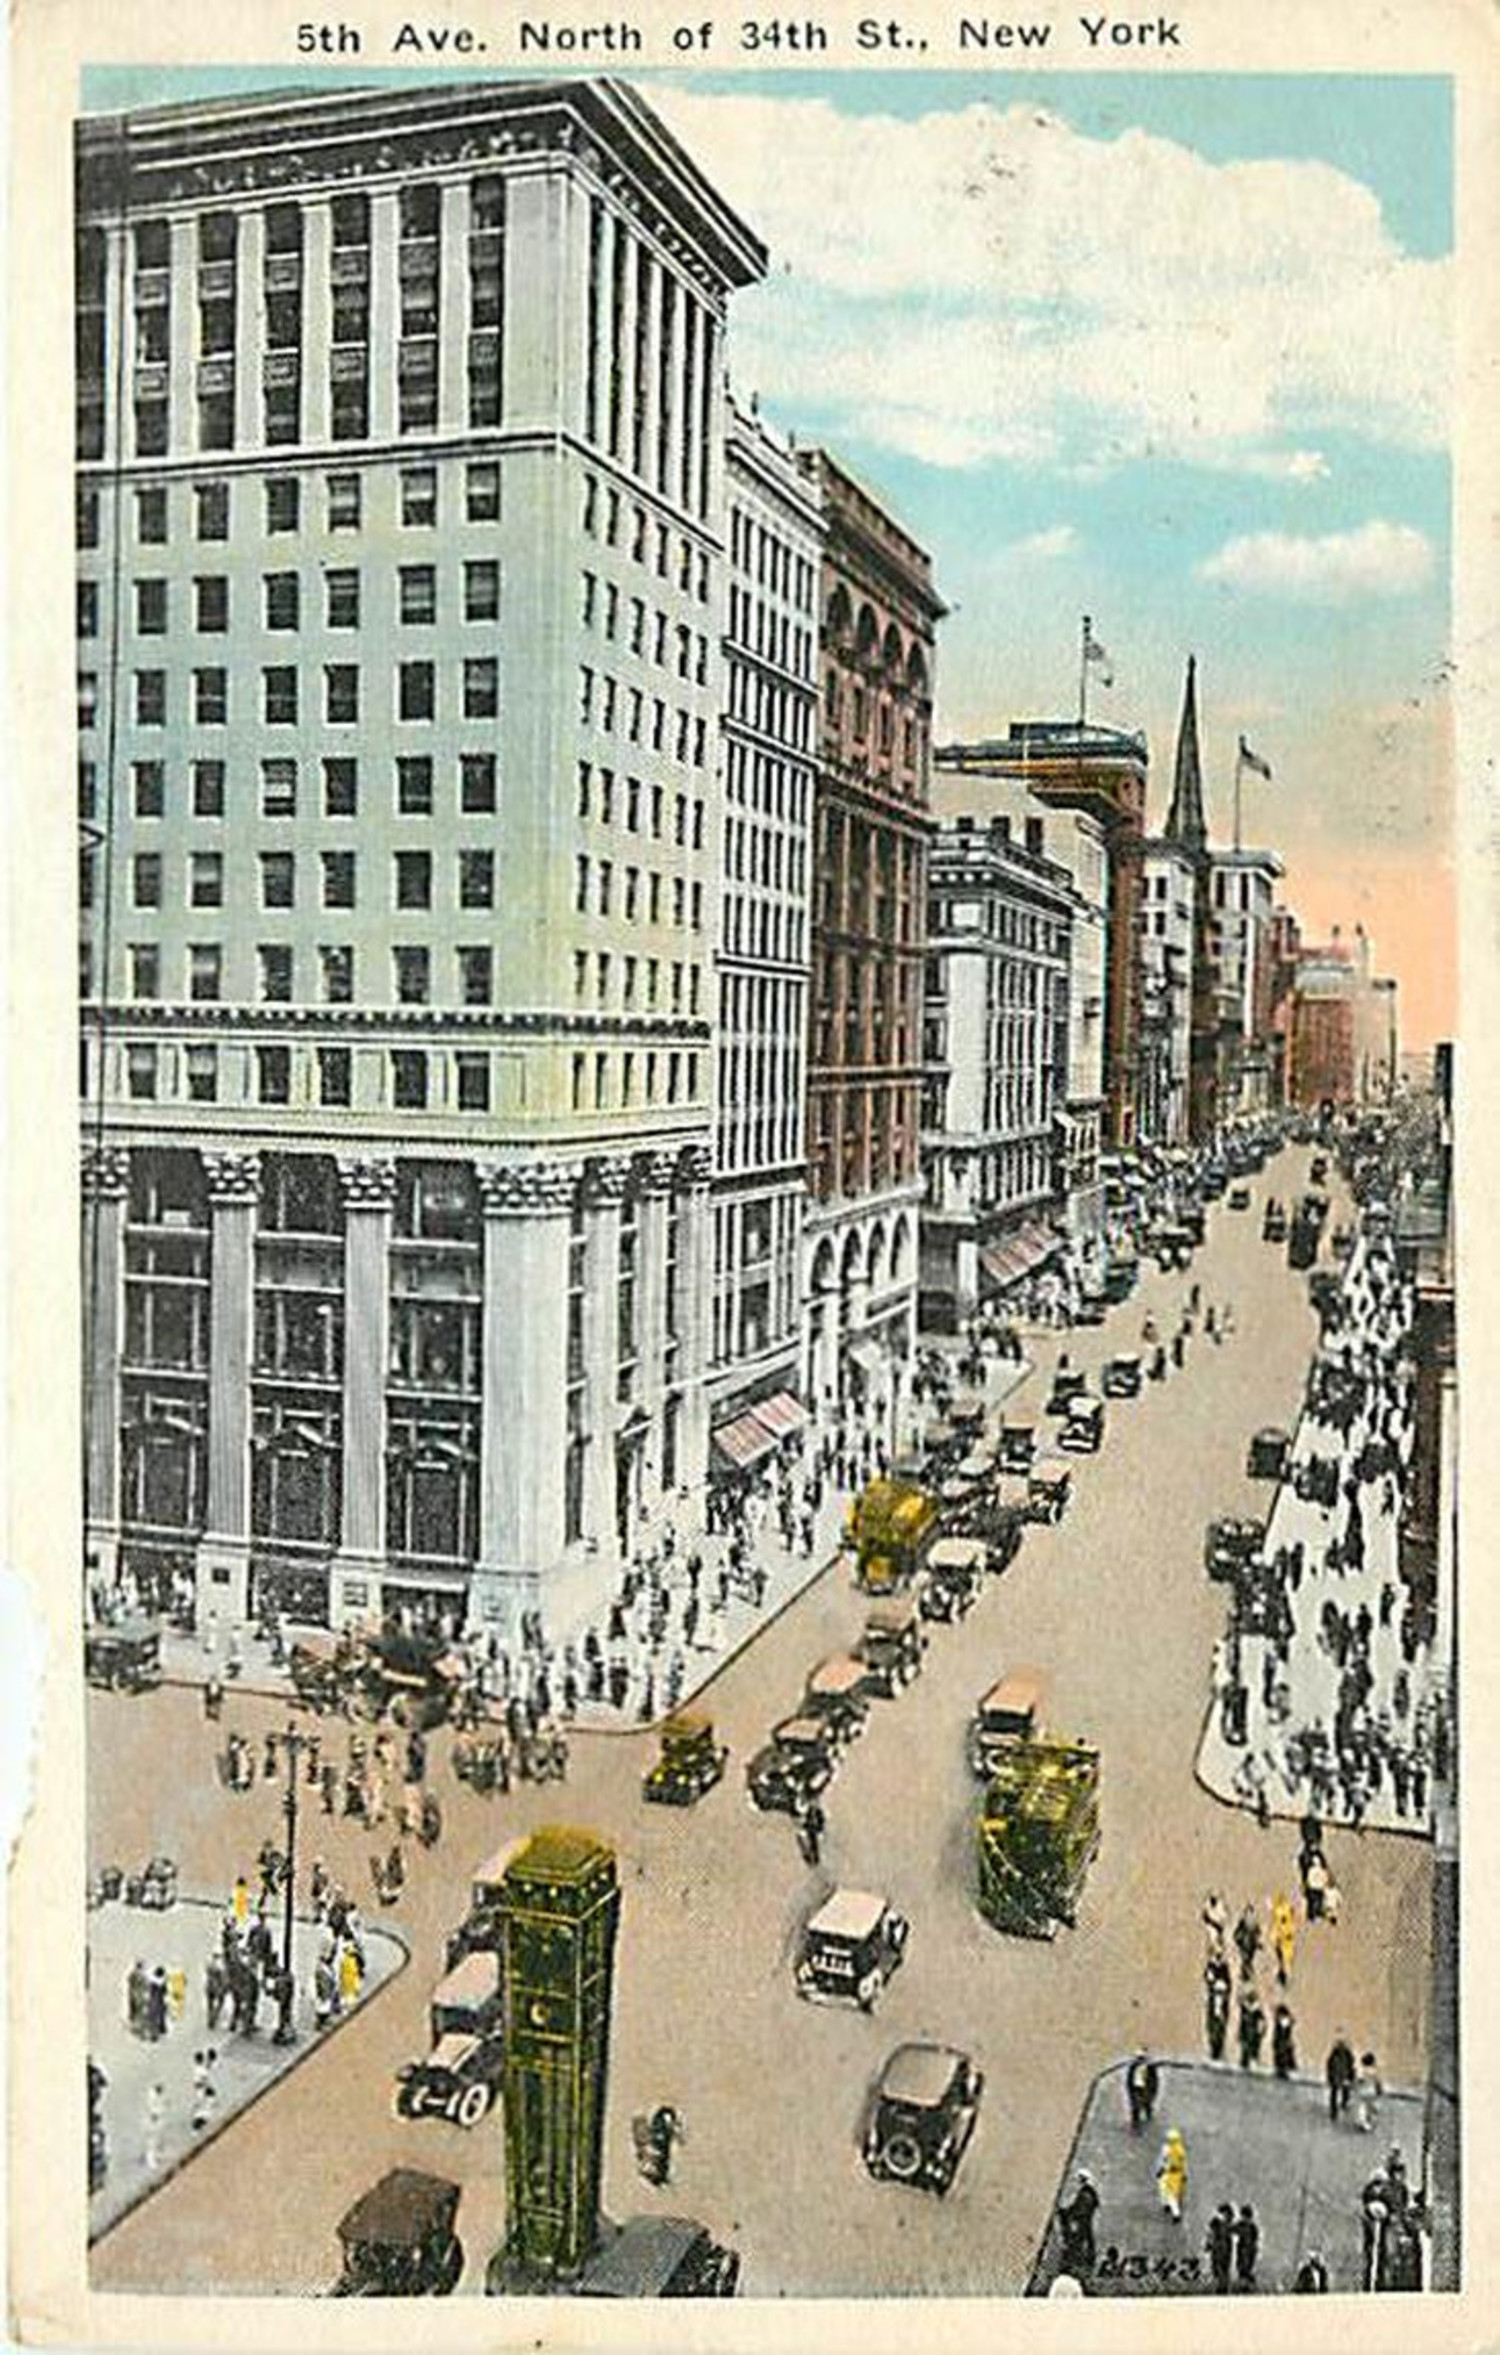 From around 1926 we switch the view around to look north from 34th Street. The building in the foreground is the mutilated Knickerbocker Trust Company. The ornate original three story building at 358 Fifth Avenue, designed by McKim, Mead & White was altered in 1921 with a 10 story addition (seen here) and completely renovated to its current mundane state in 1958. The large structure in the middle of the street at the bottom of the postcard is one of the first traffic signal control towers in New York City.